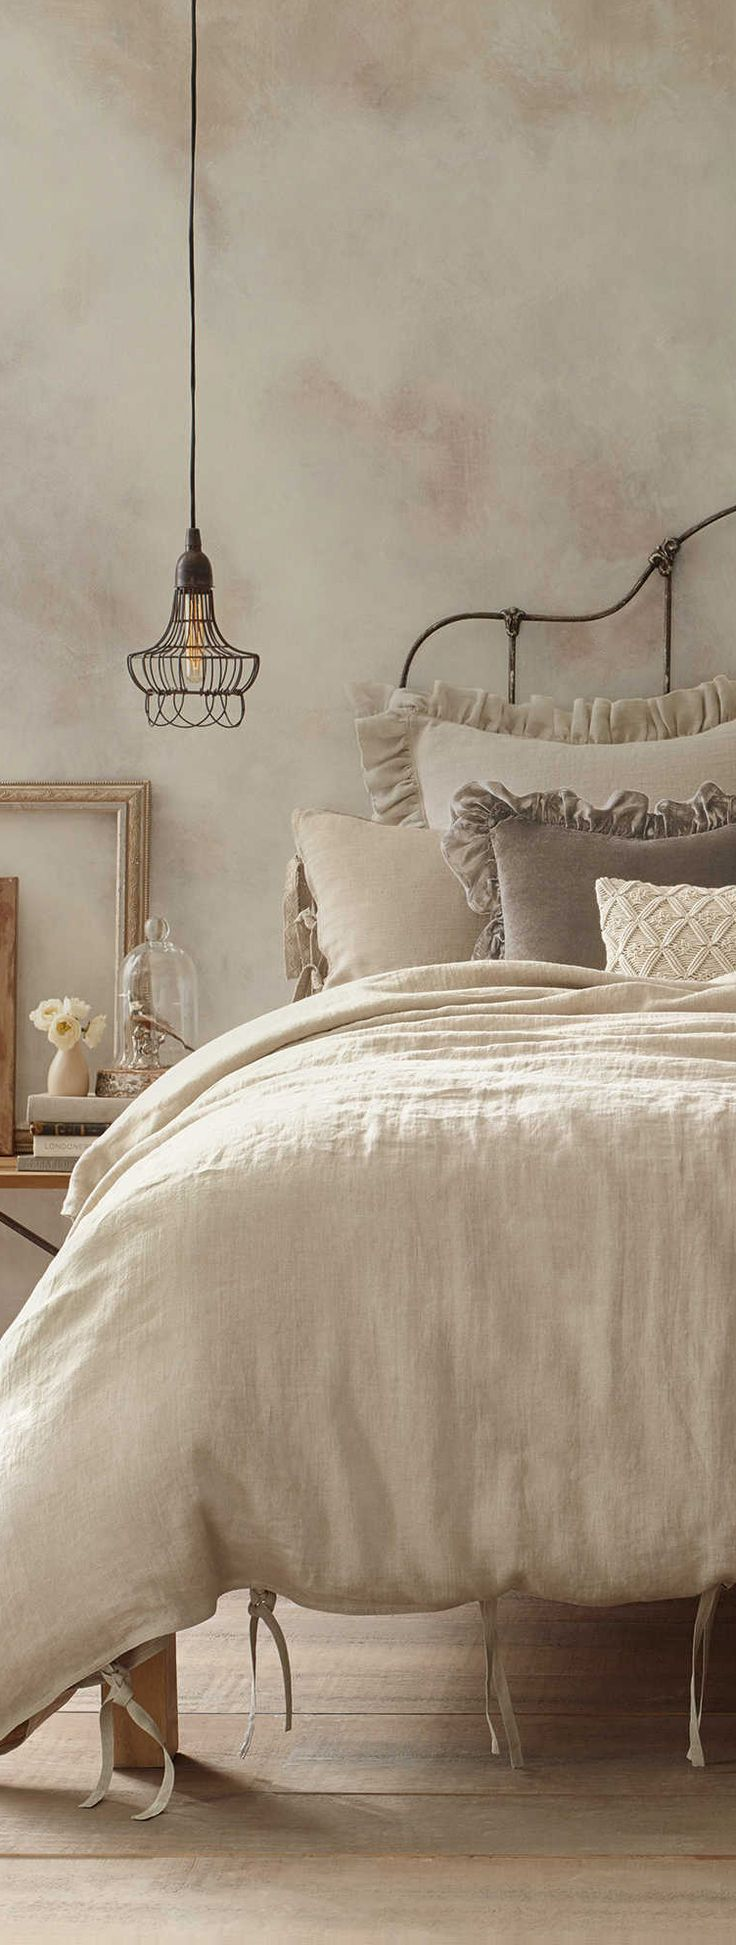 Vintage bedding in a rustic bedroom